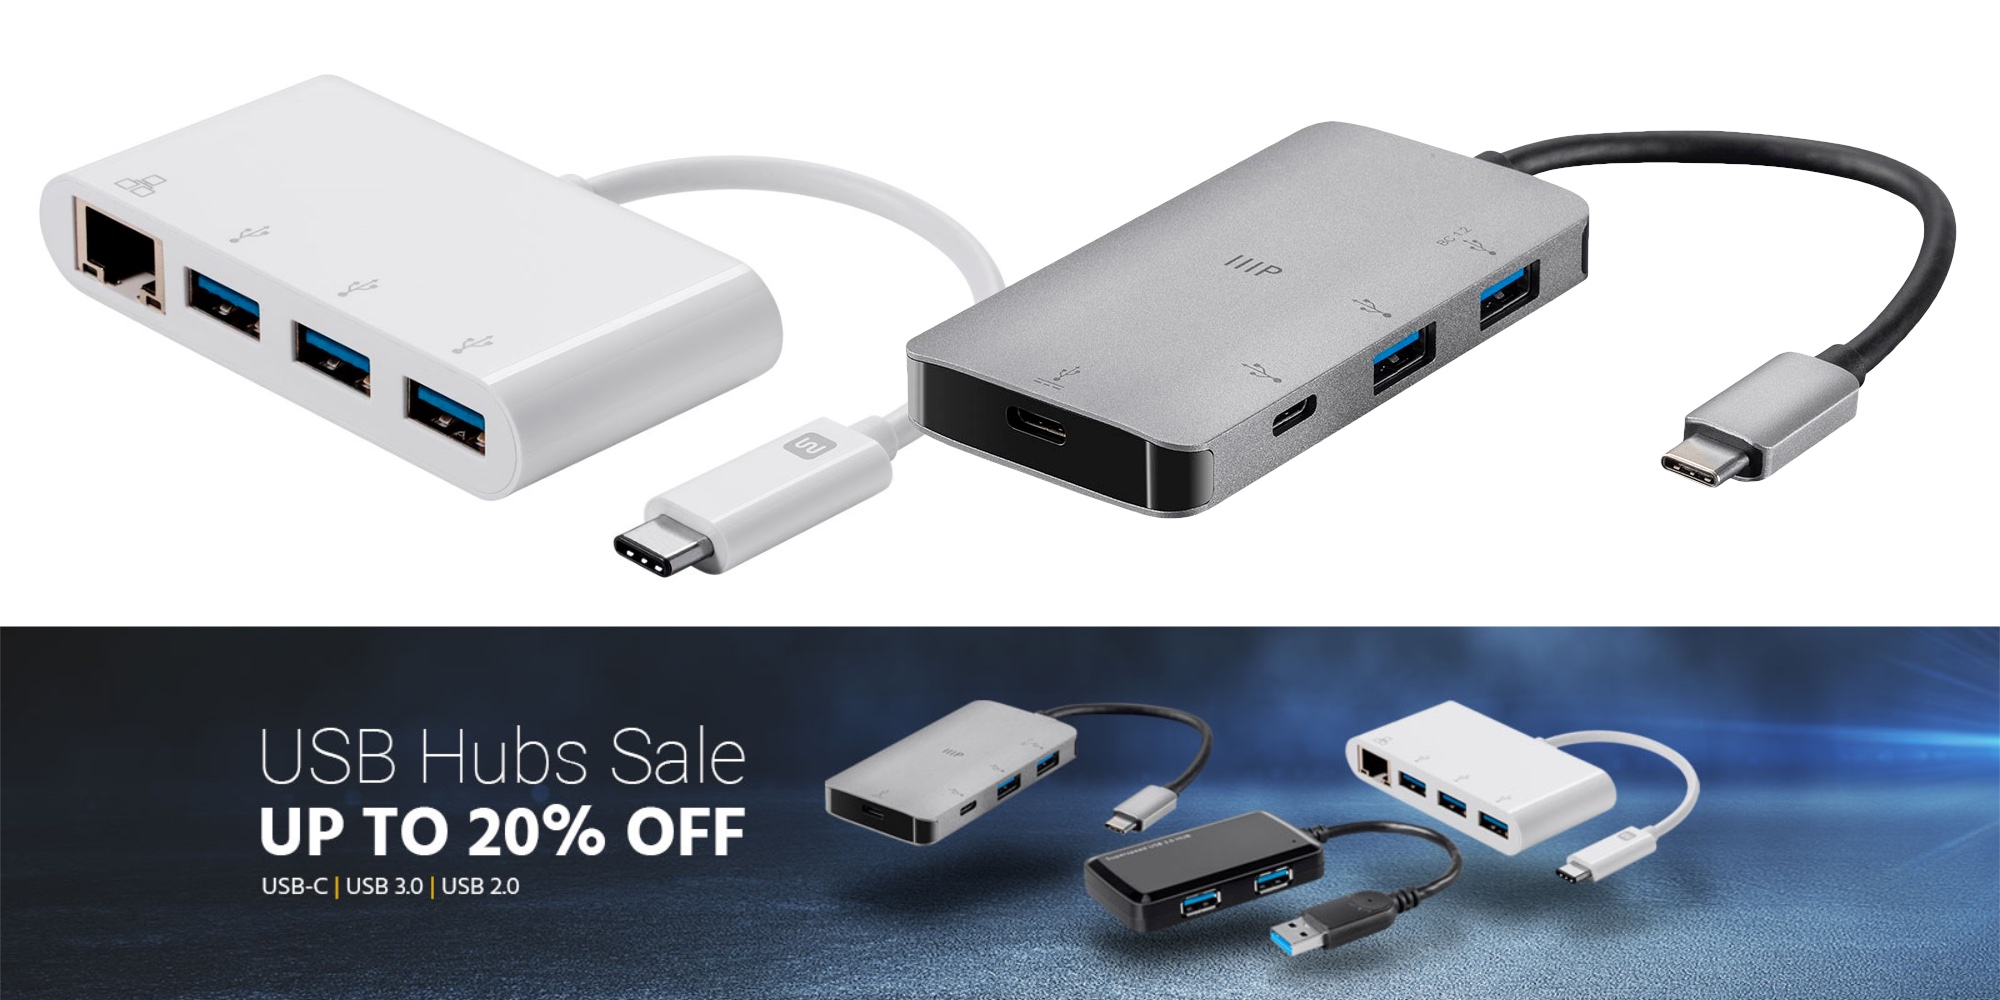 Save up to 20% on USB-C hubs and more at Monoprice from under $9 shipped